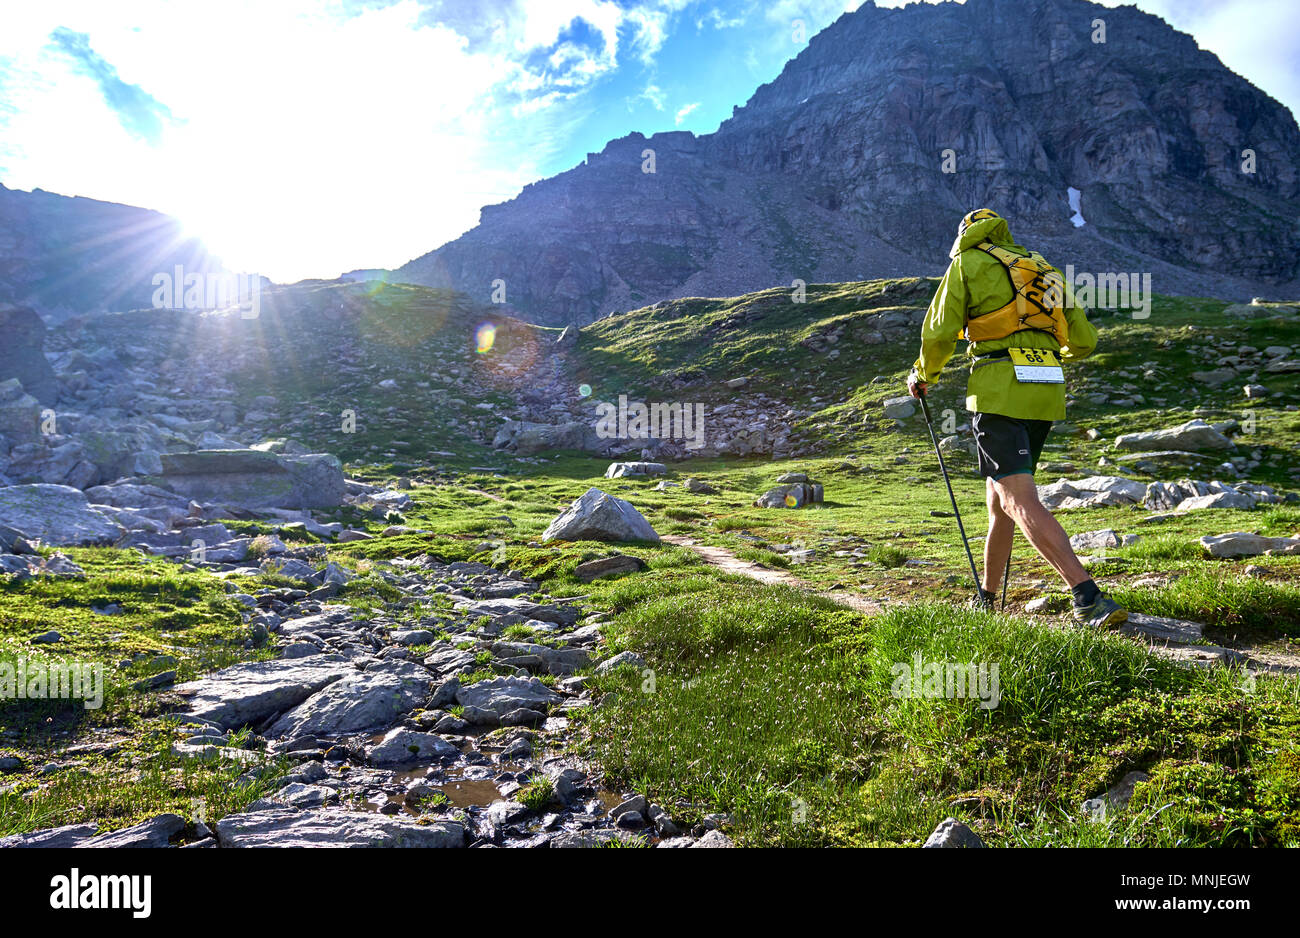 Rear view of trail runner walking up steep mountain path, Alpe Devero, Verbania, Italy - Stock Image